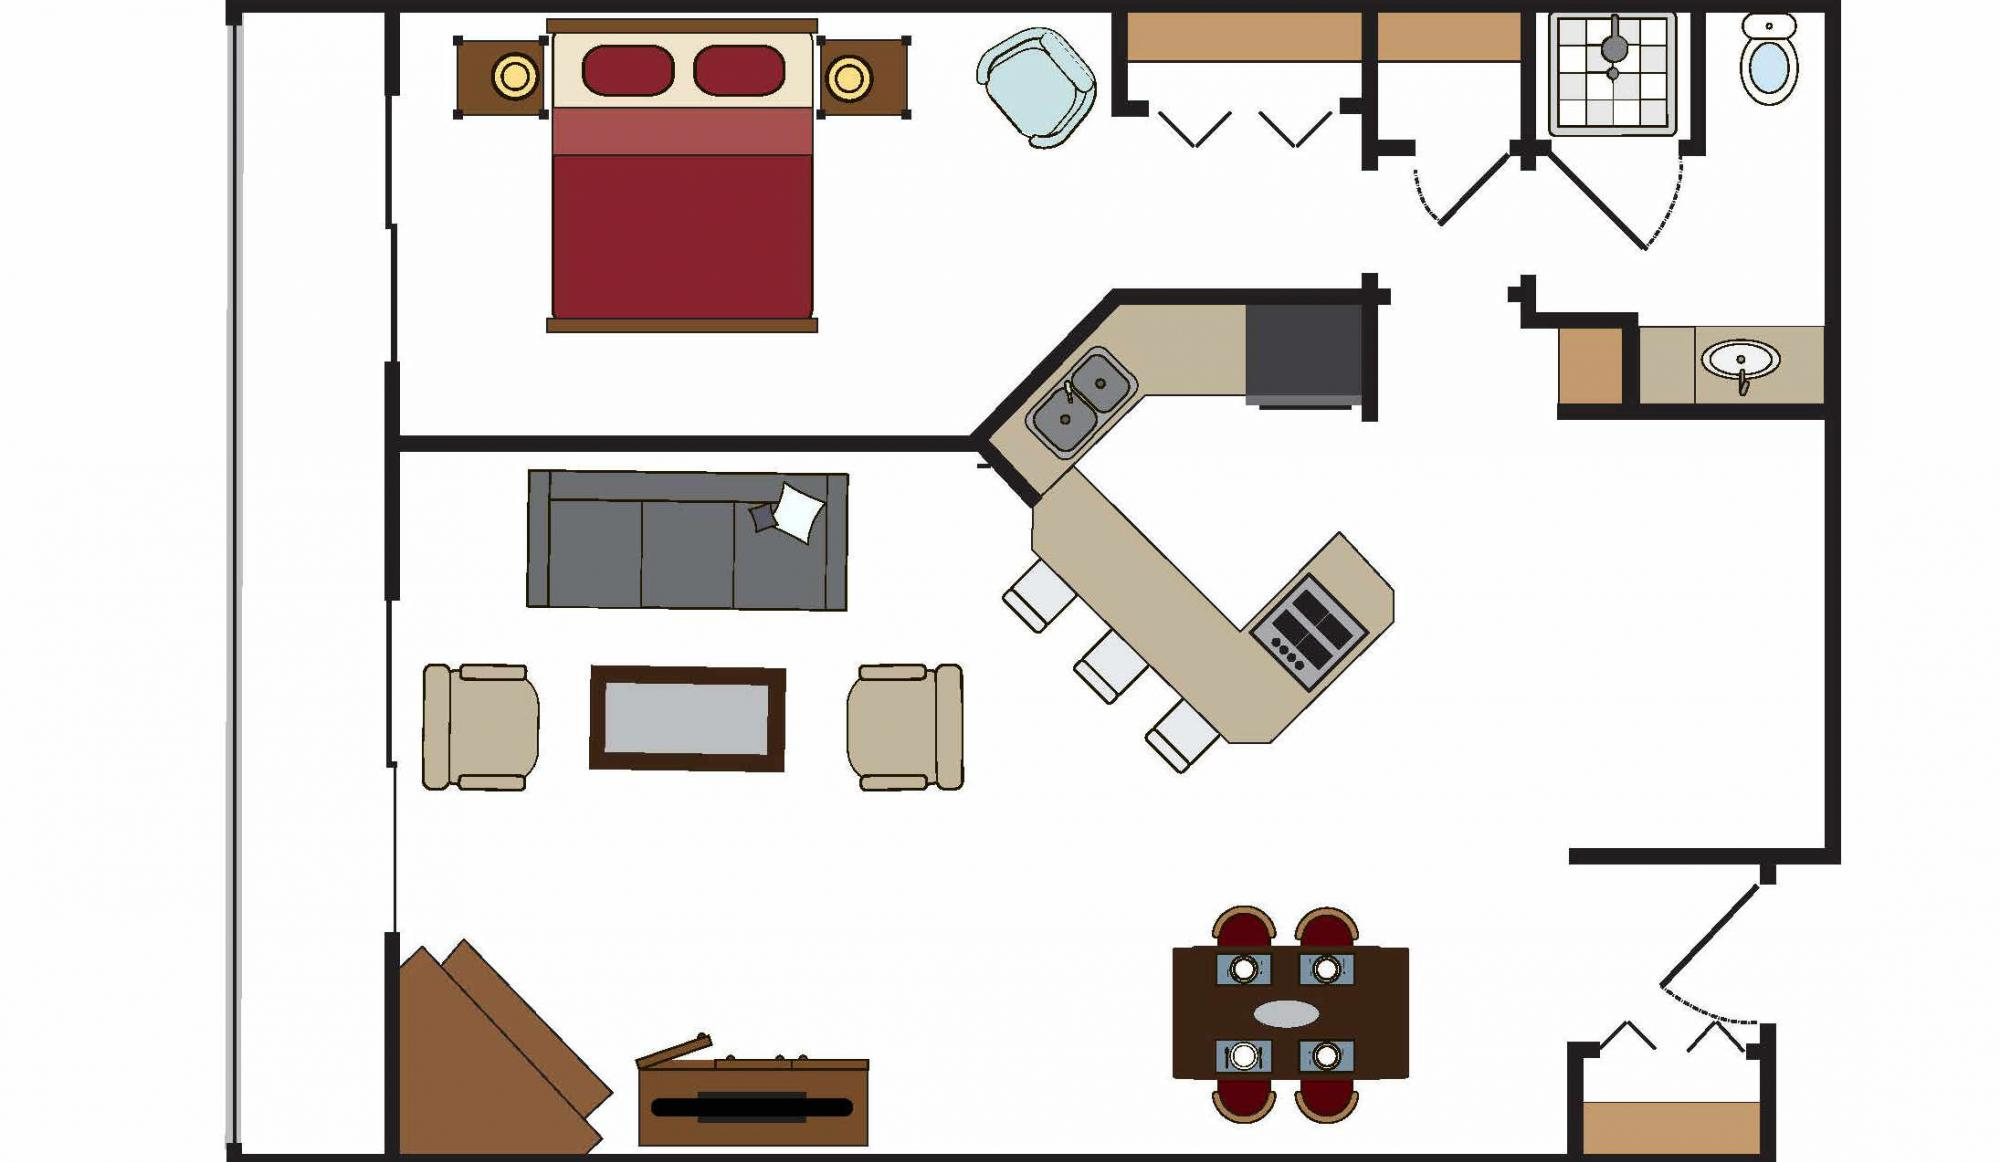 One Bedroom Suite Living Room Floor Plan in Building 4 at Beaver Run Resorts in Breckenridge